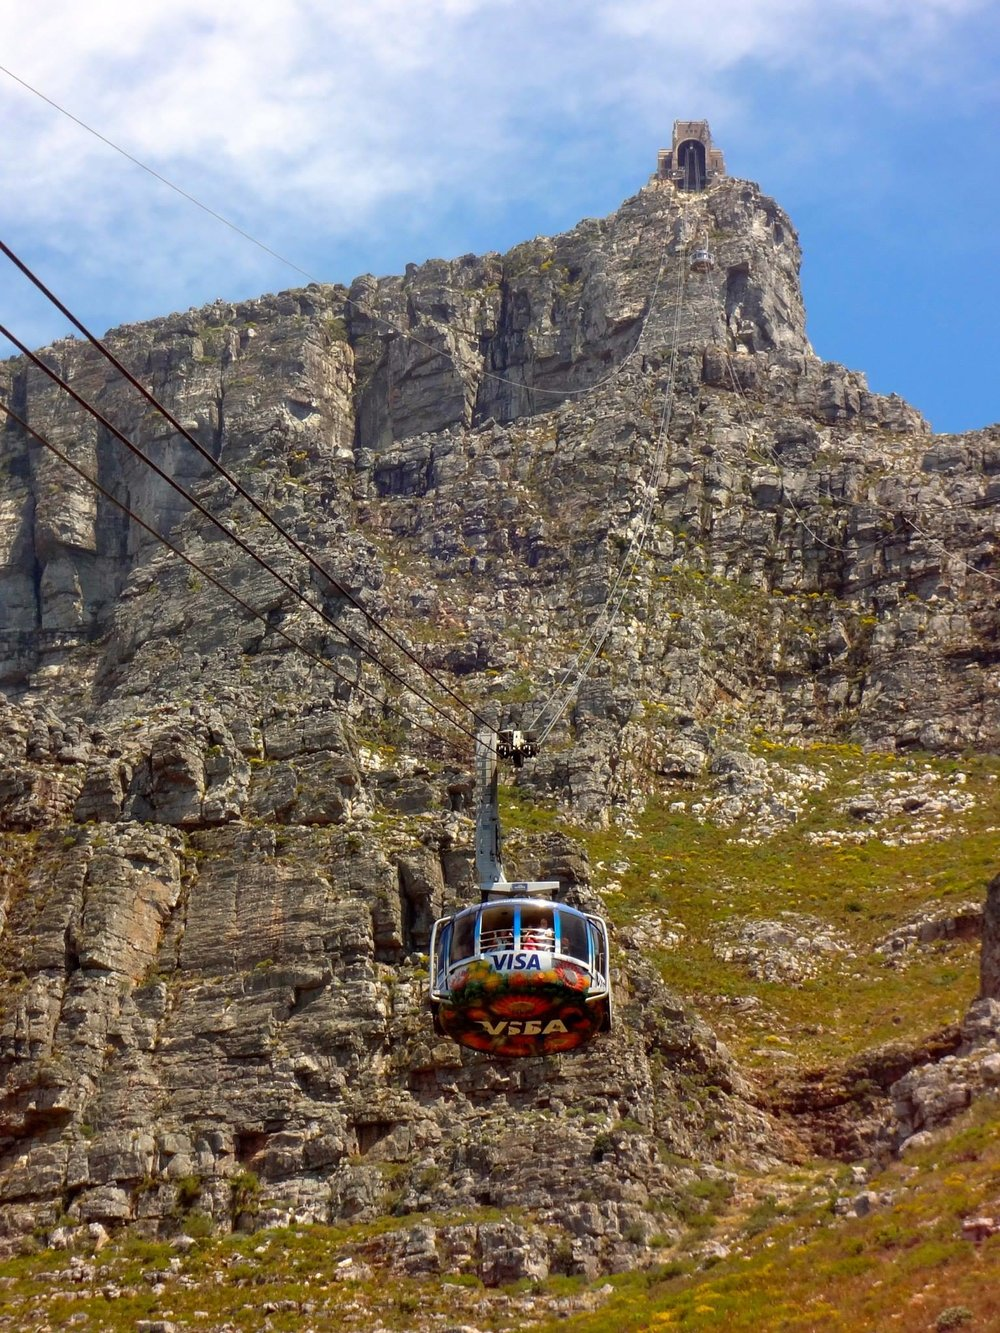 Copy of Cable car at the Table Mountain